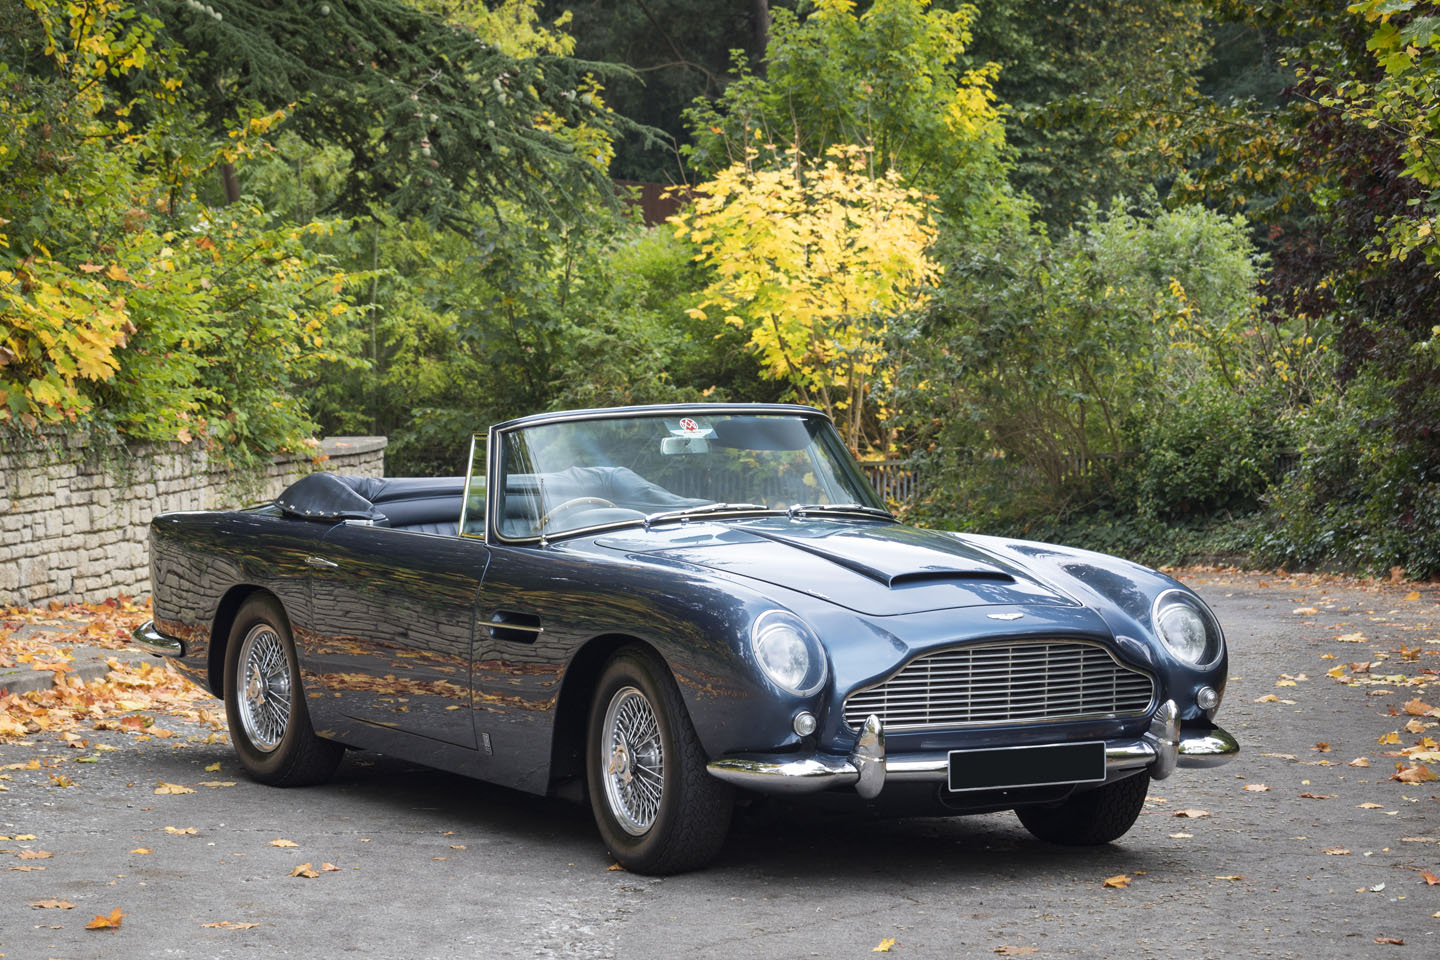 1965 aston martin db5 convertible cars for sale fiskens. Black Bedroom Furniture Sets. Home Design Ideas